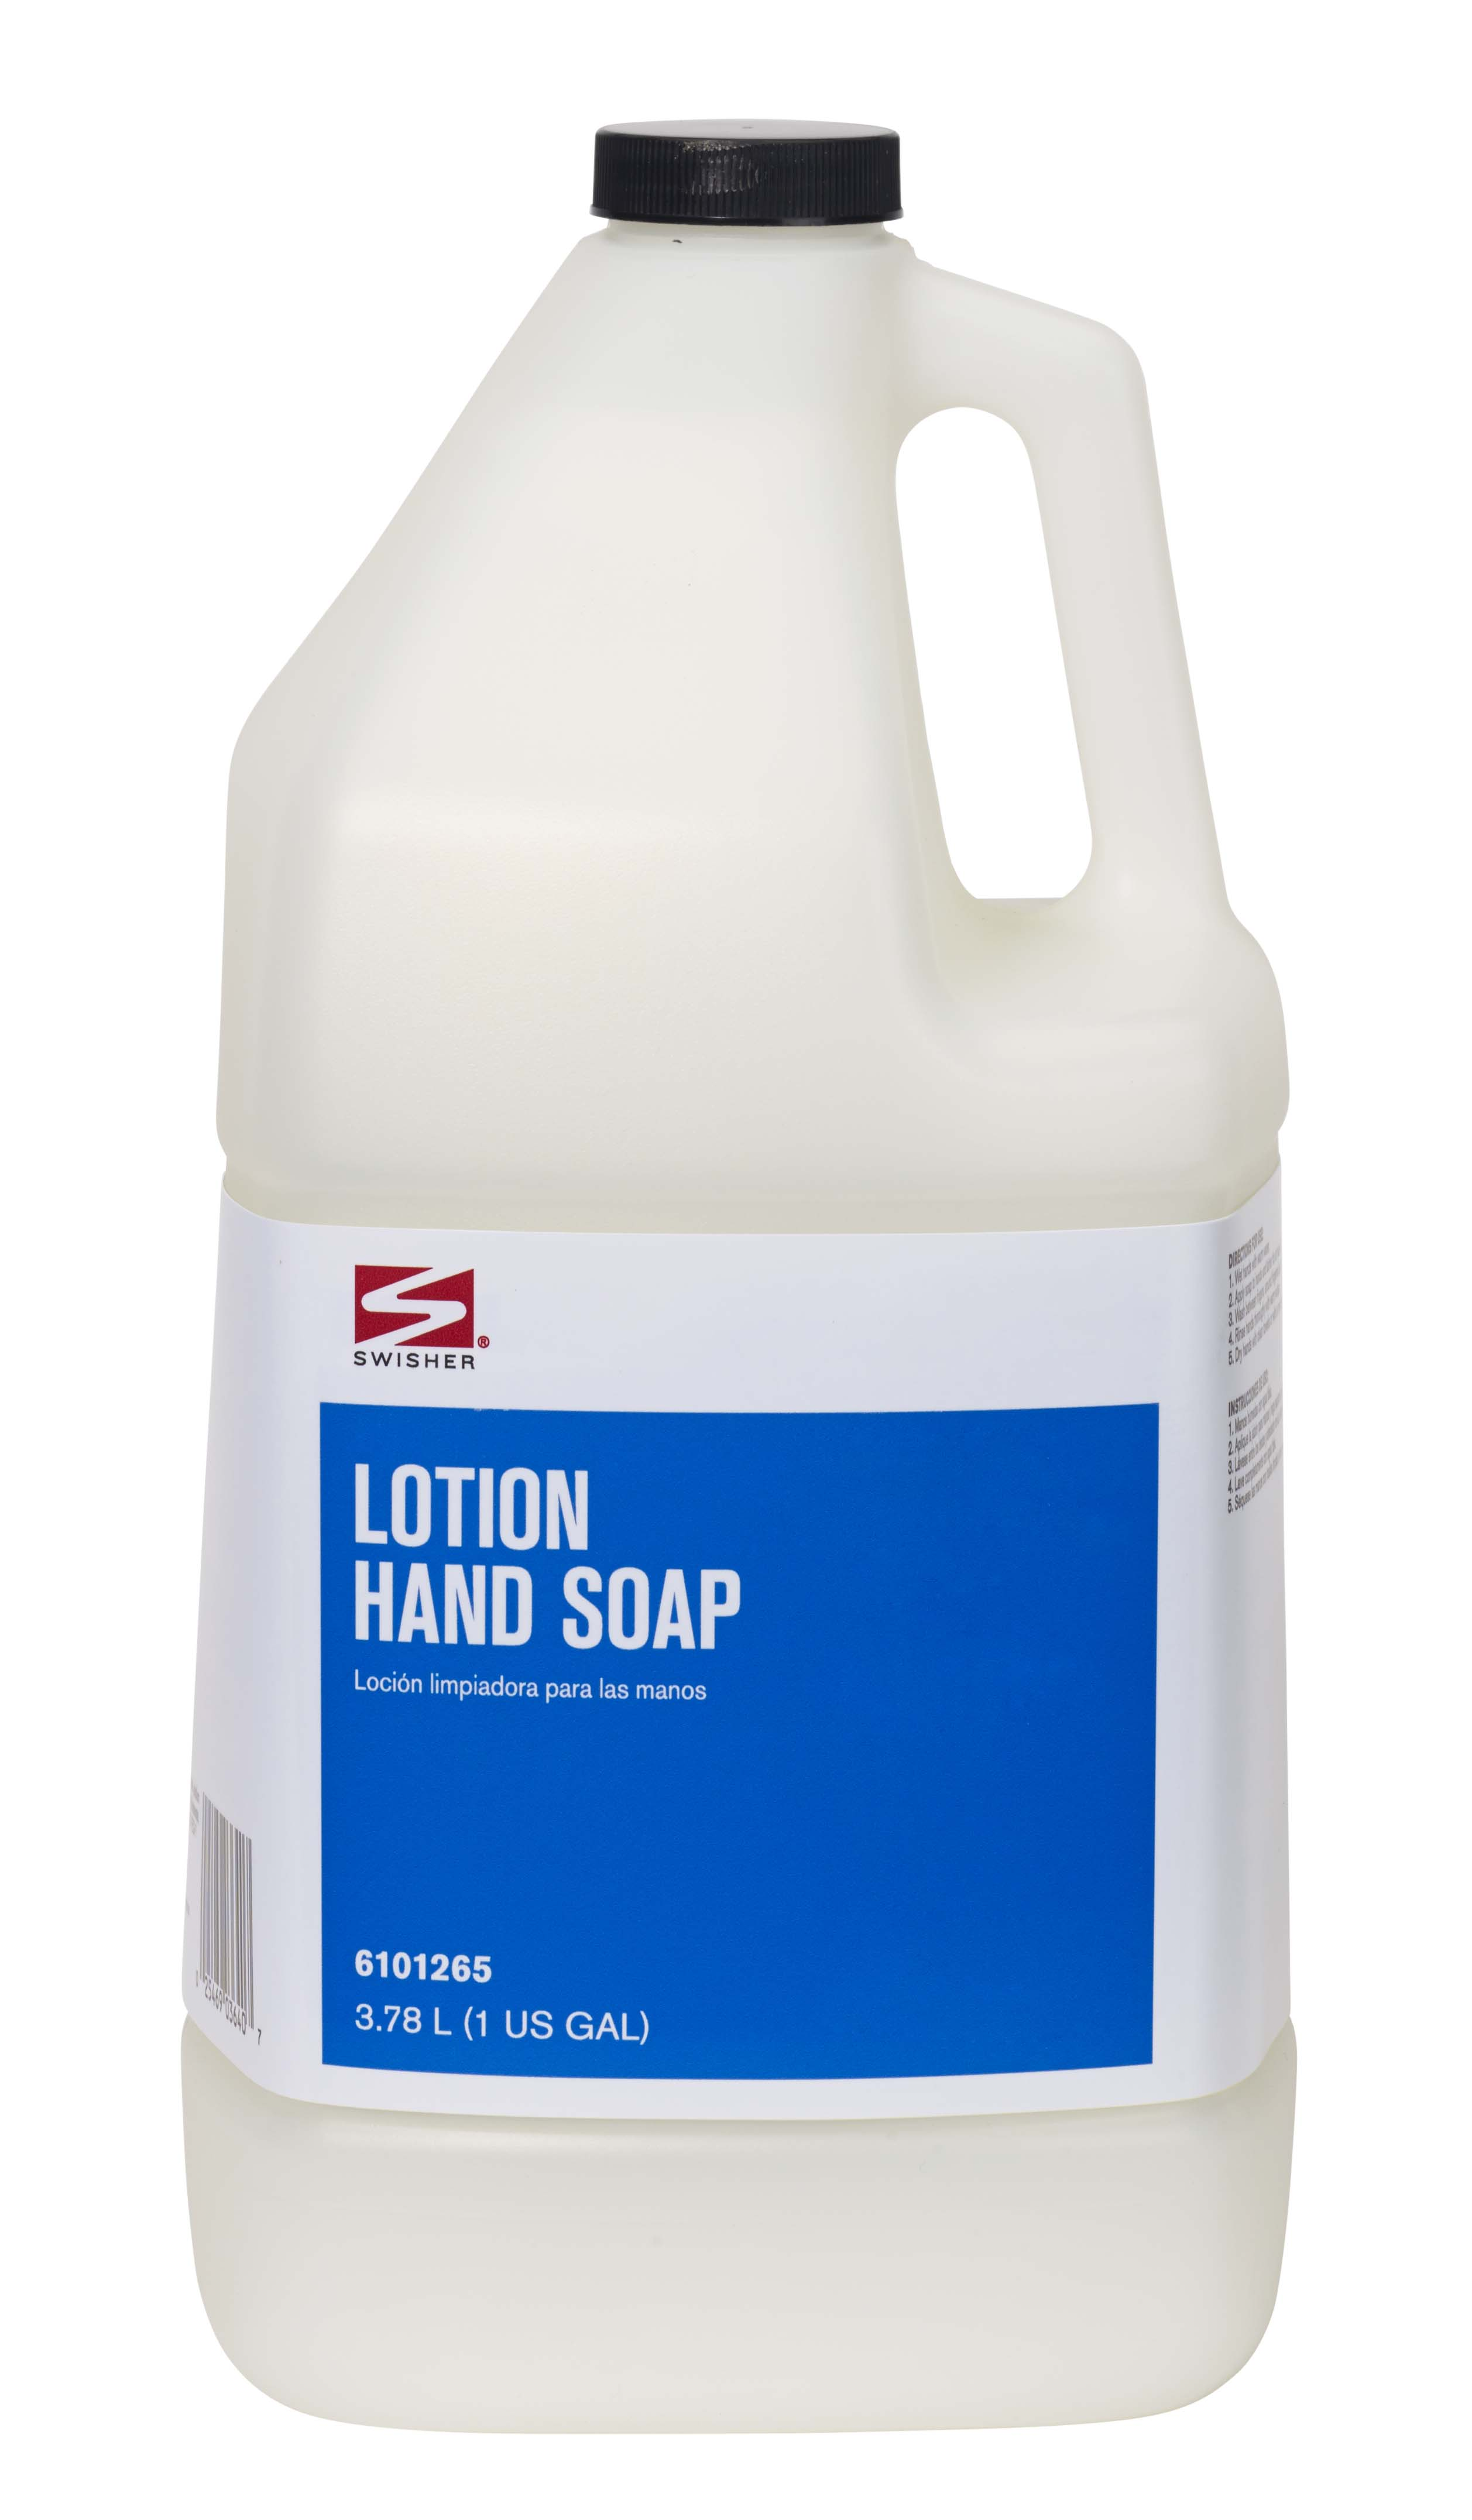 Swisher Lotion Hand Soap